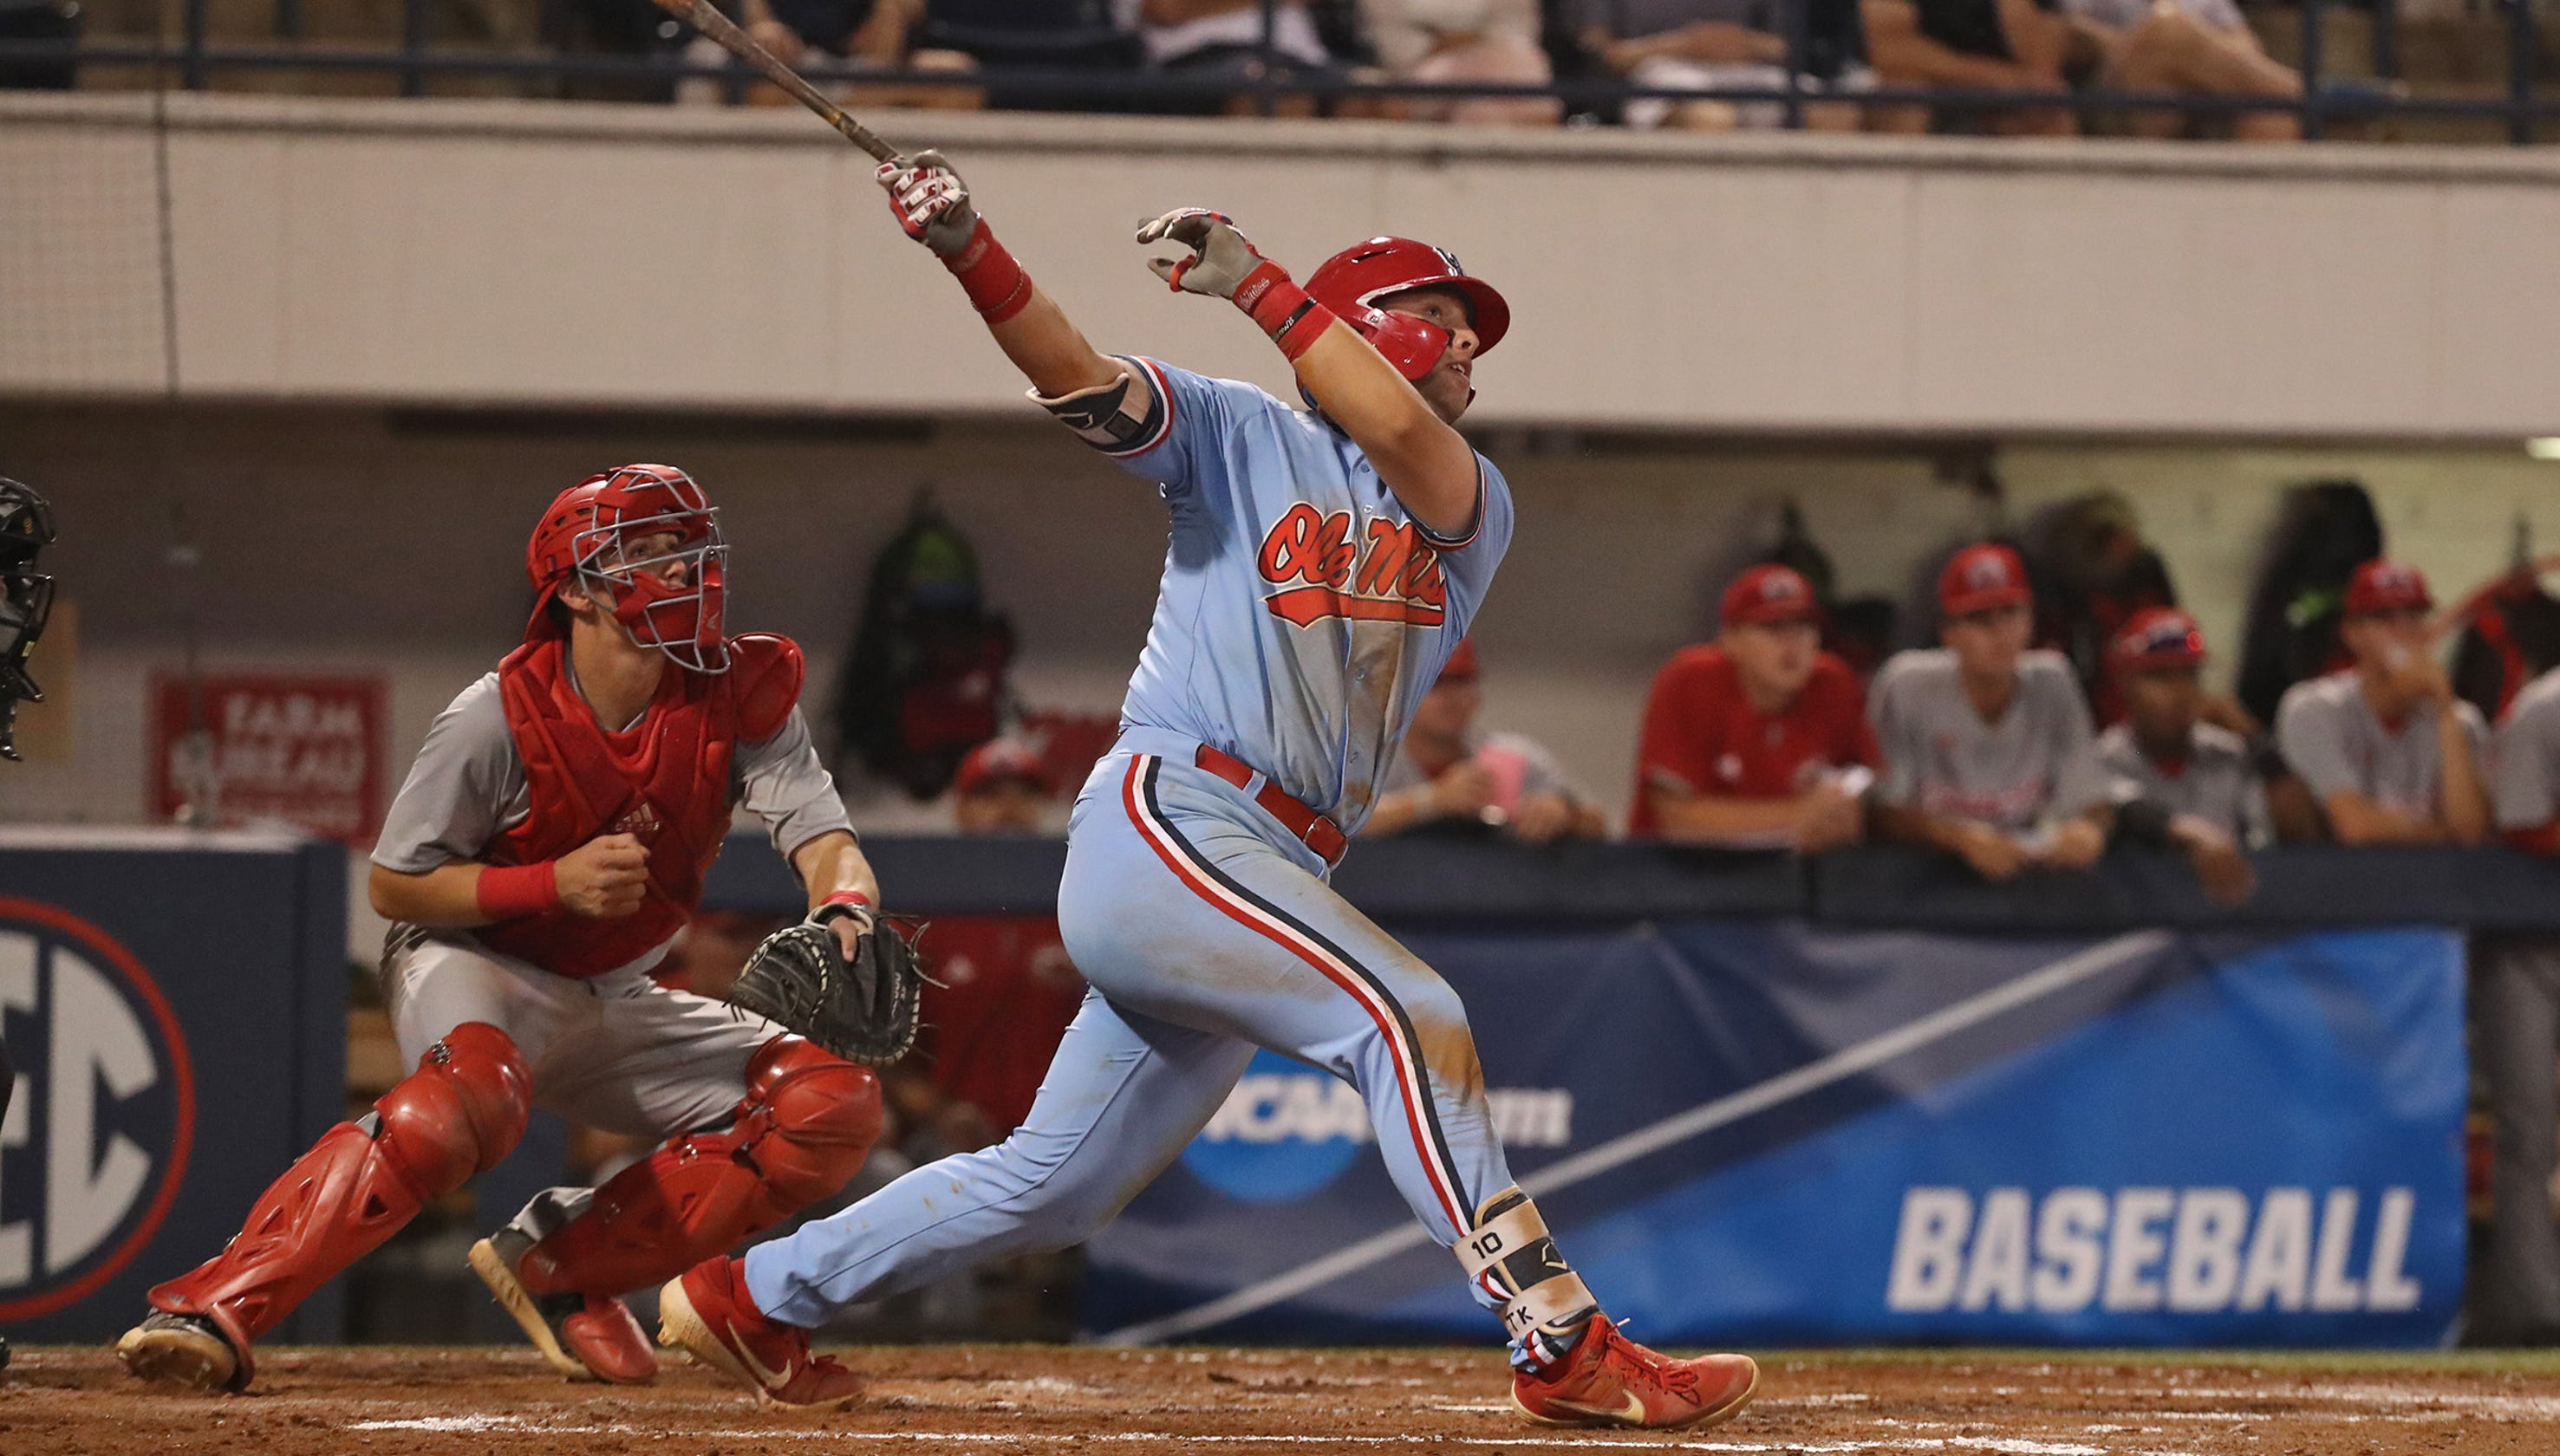 Ole Miss baseball routs Jacksonville State 16-2 in NCAA Tournament opener, advances to winners' bracket